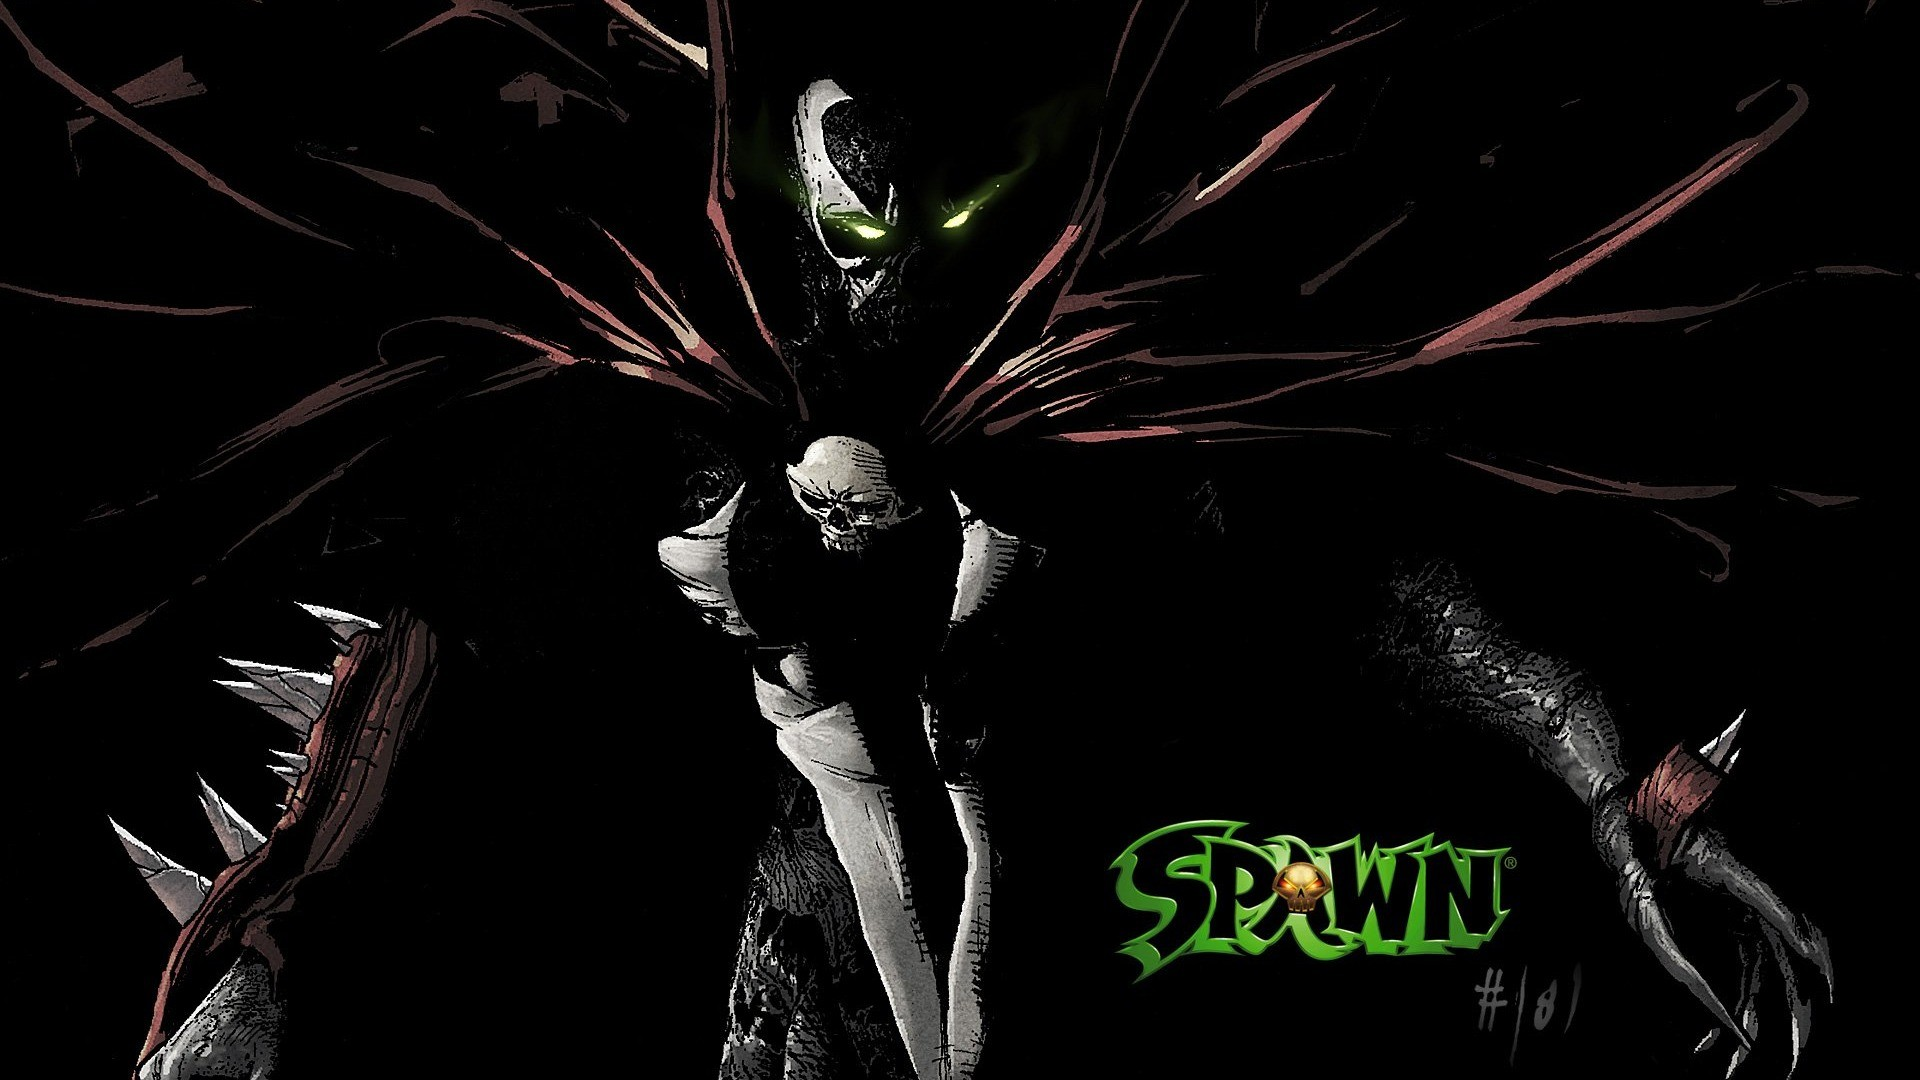 Spawn HD Wallpapers #21 – 1920×1080.